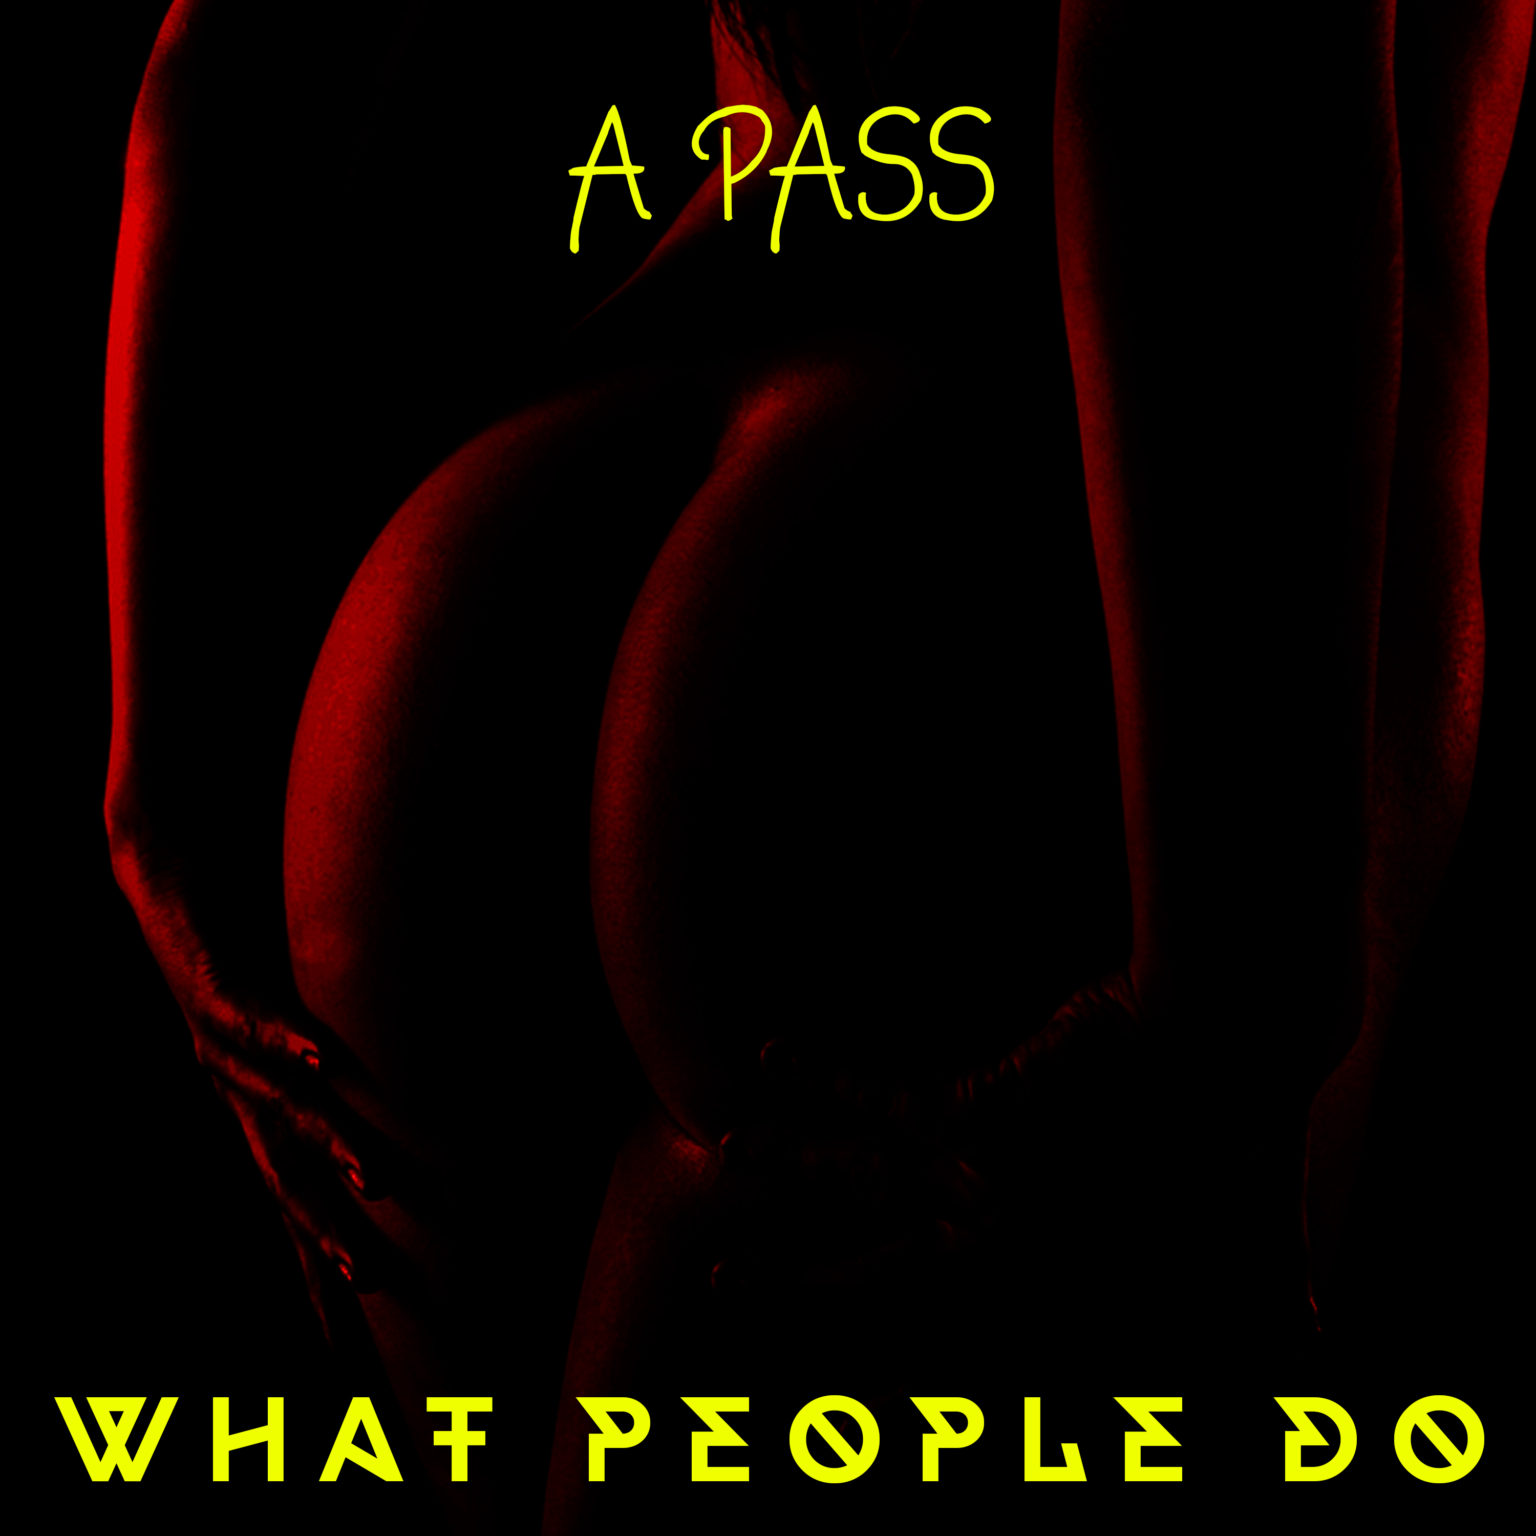 What People Do by A pass